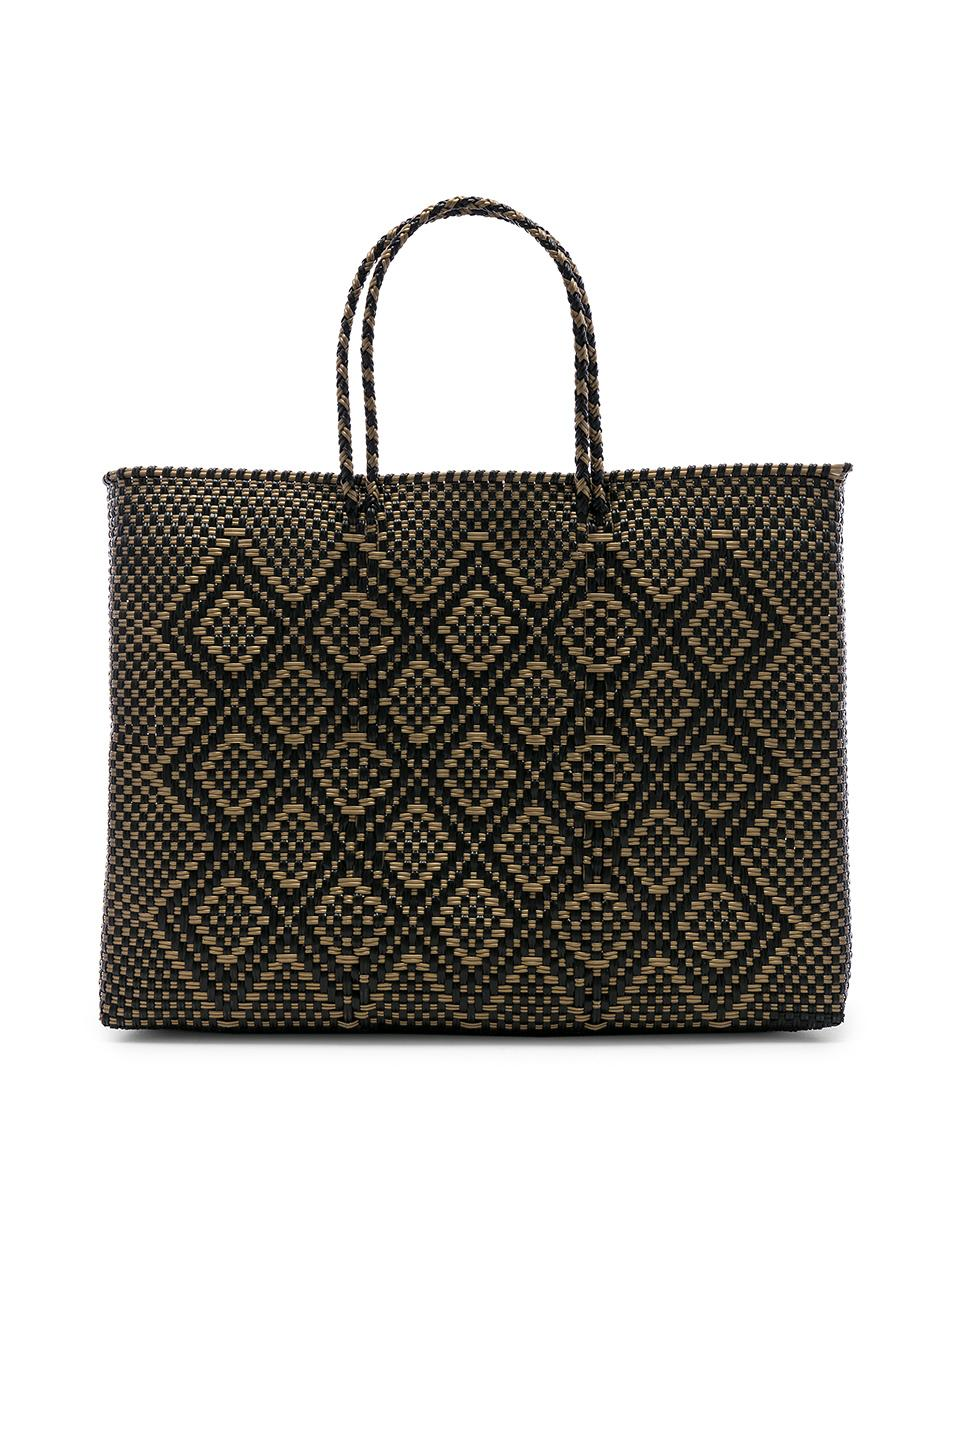 98651c61cab44 House of Harlow 1960 X Revolve Kasa Tote in Black - Lyst